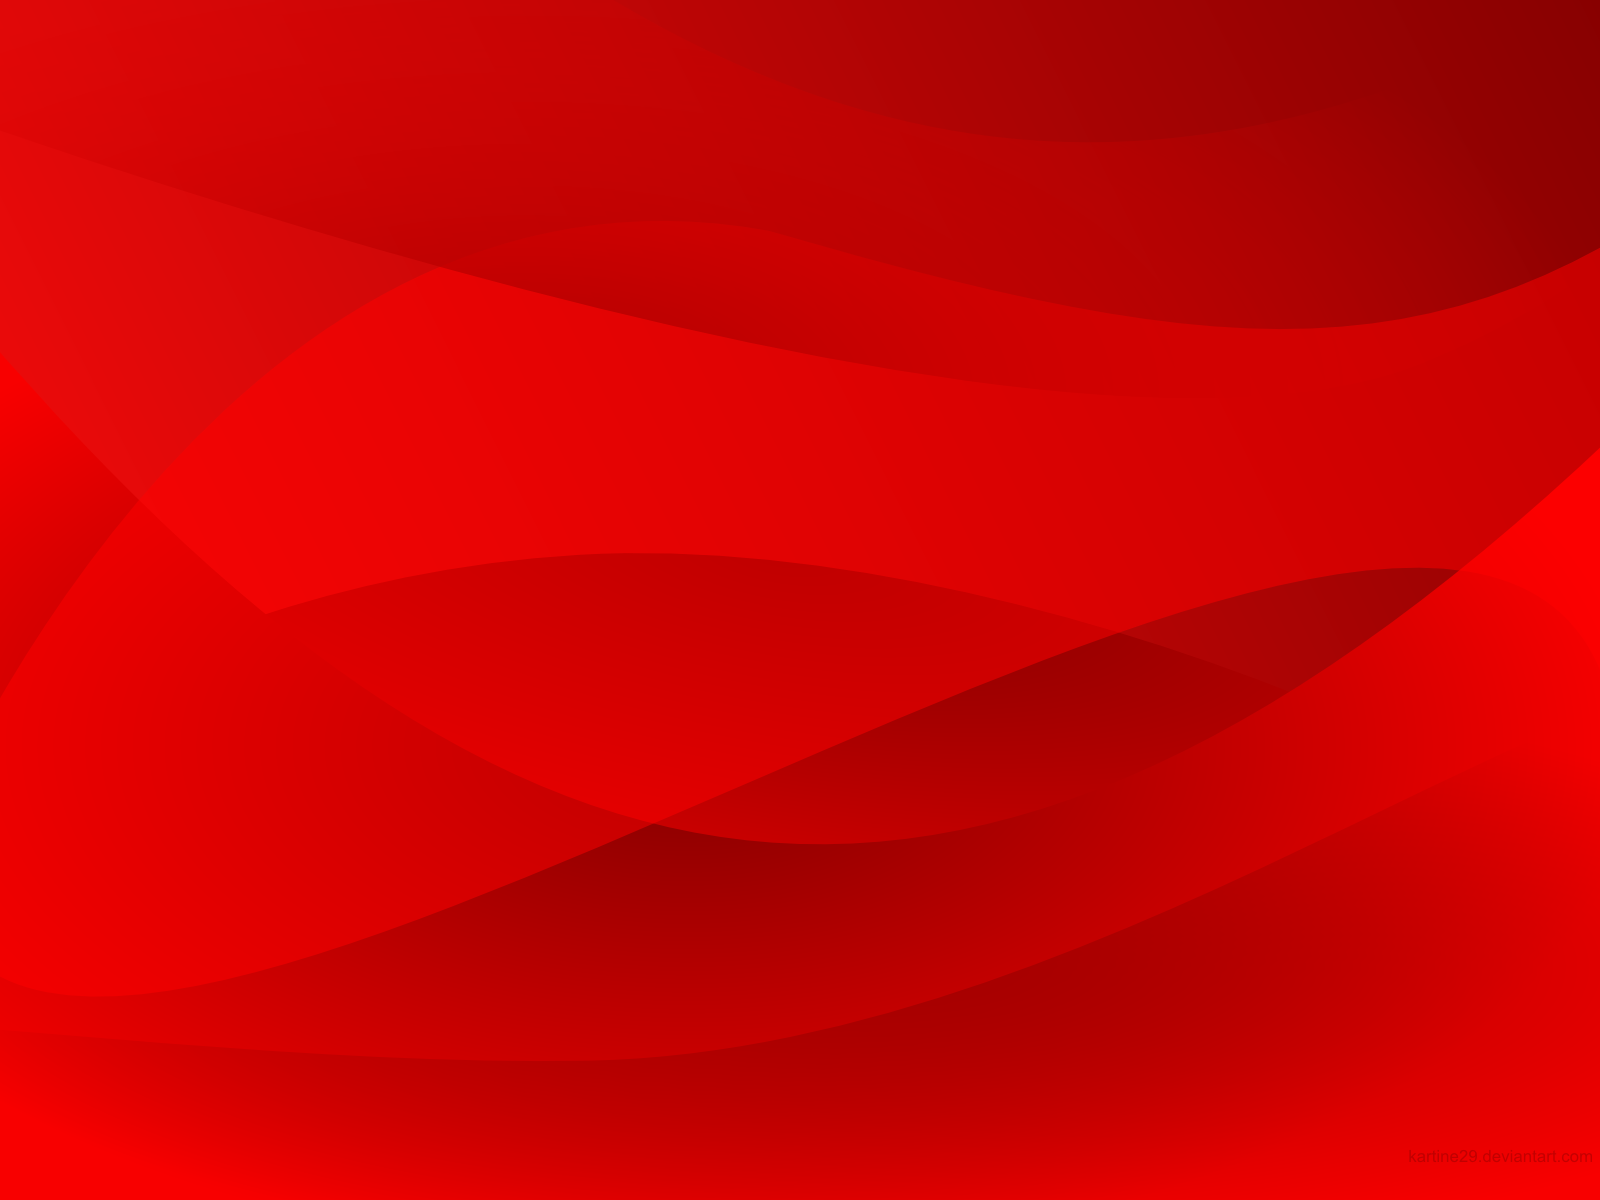 abstract red backgrounds Group with 73 items